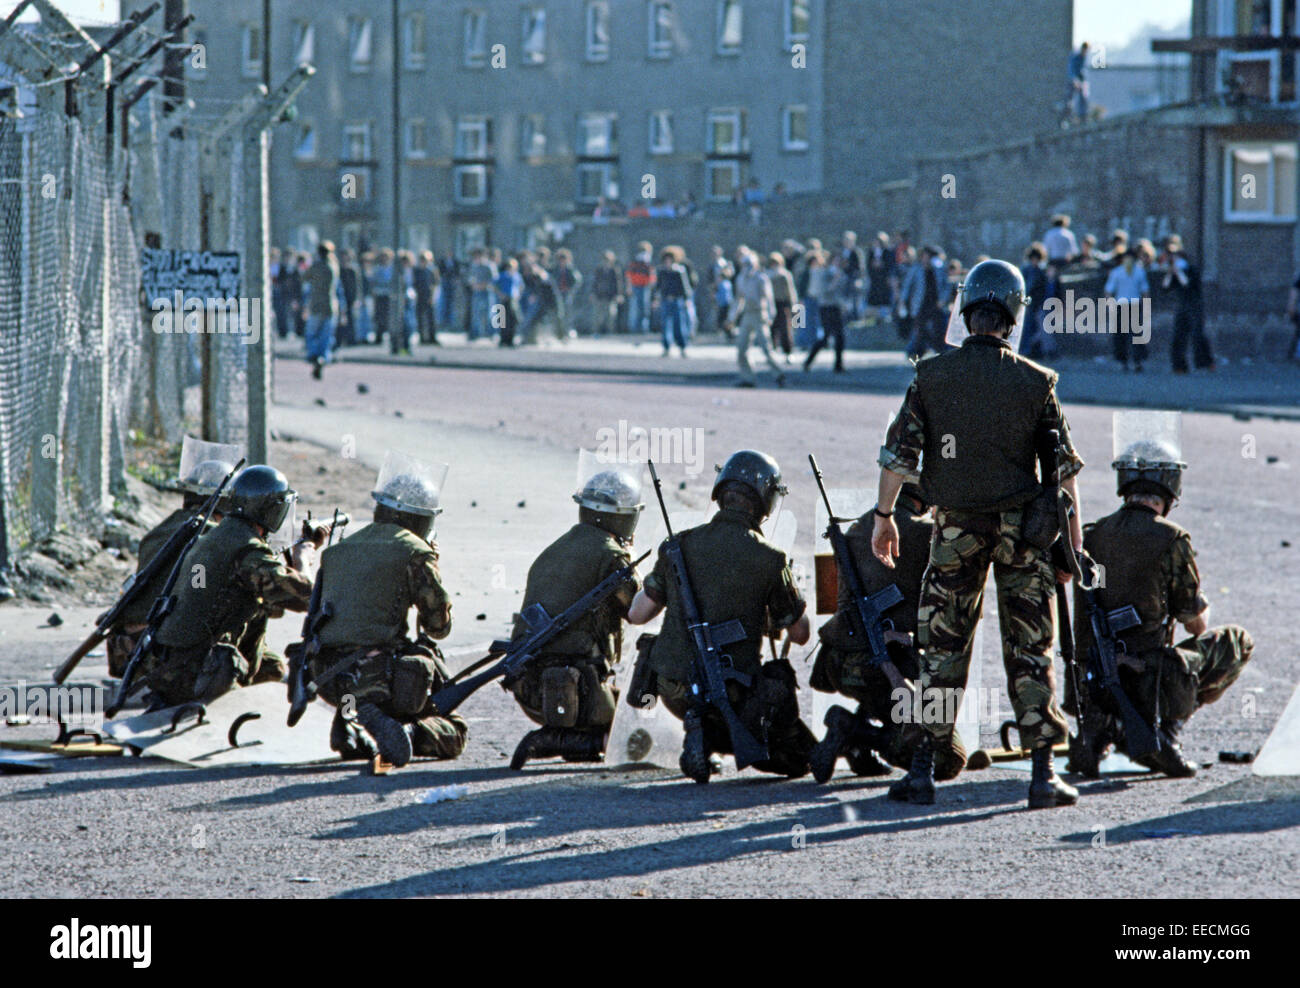 Derry / Londonderry United Kingdom  City new picture : Londonderry, Derry, United Kingdom August 1975. British Army Stock ...